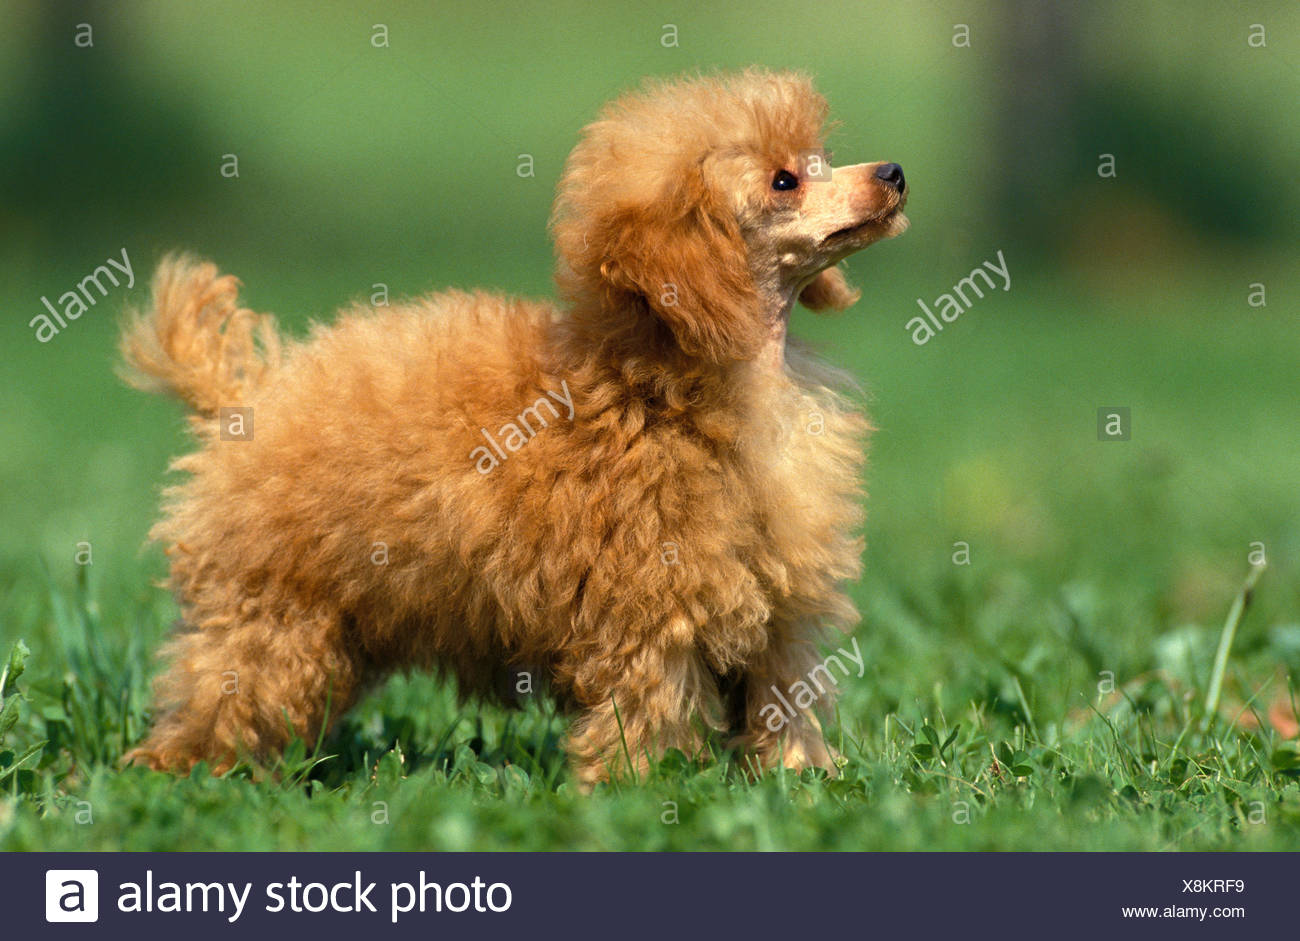 ABRICOT TOY POODLE, MALE STANDING ON GRASS - Stock Image